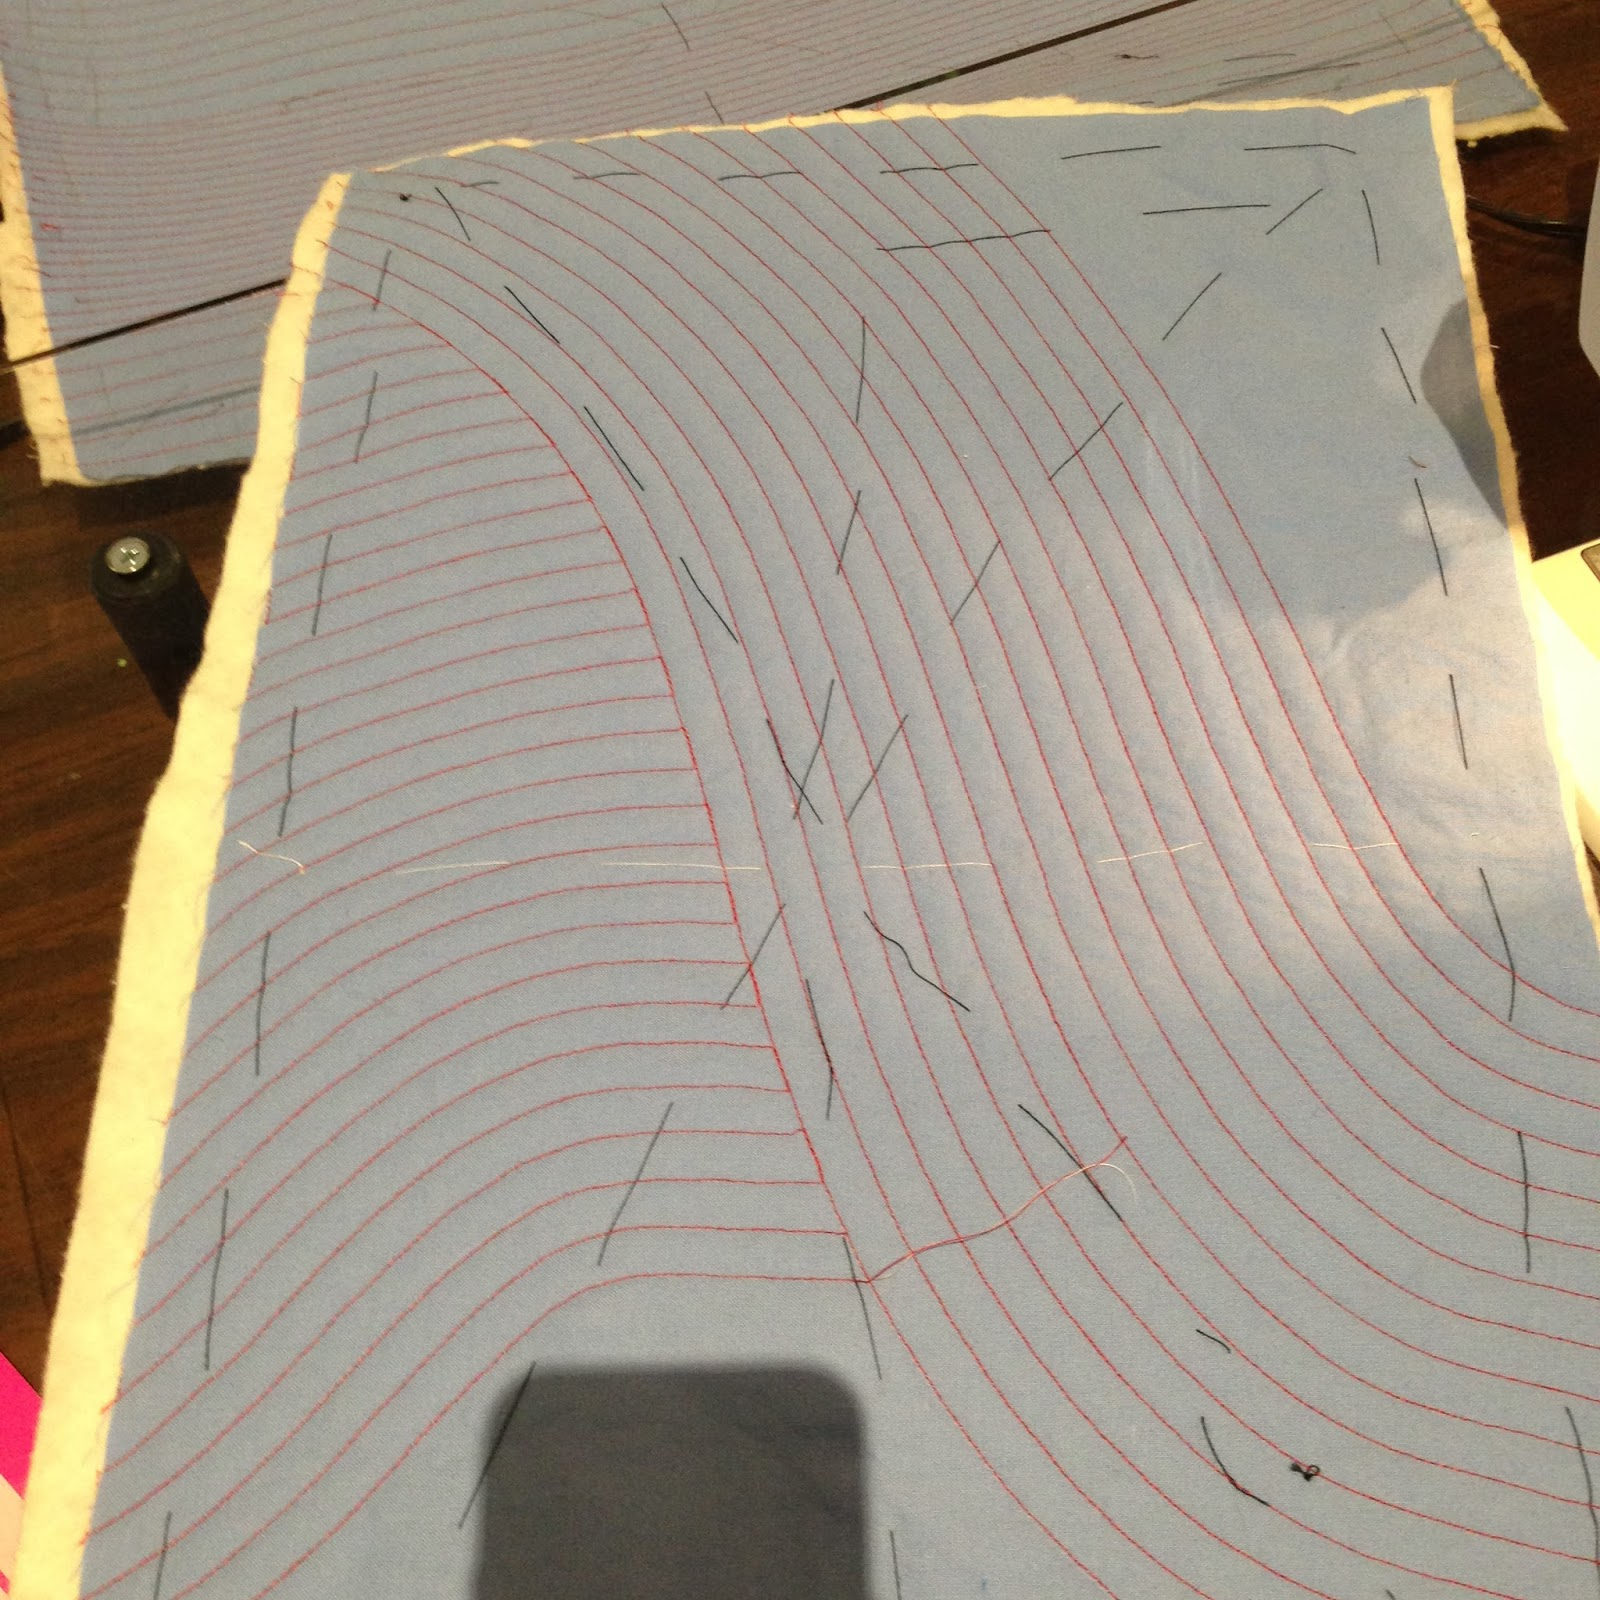 The Cozy Quilter: Walking Foot Quilting Class with Jacquie Gering